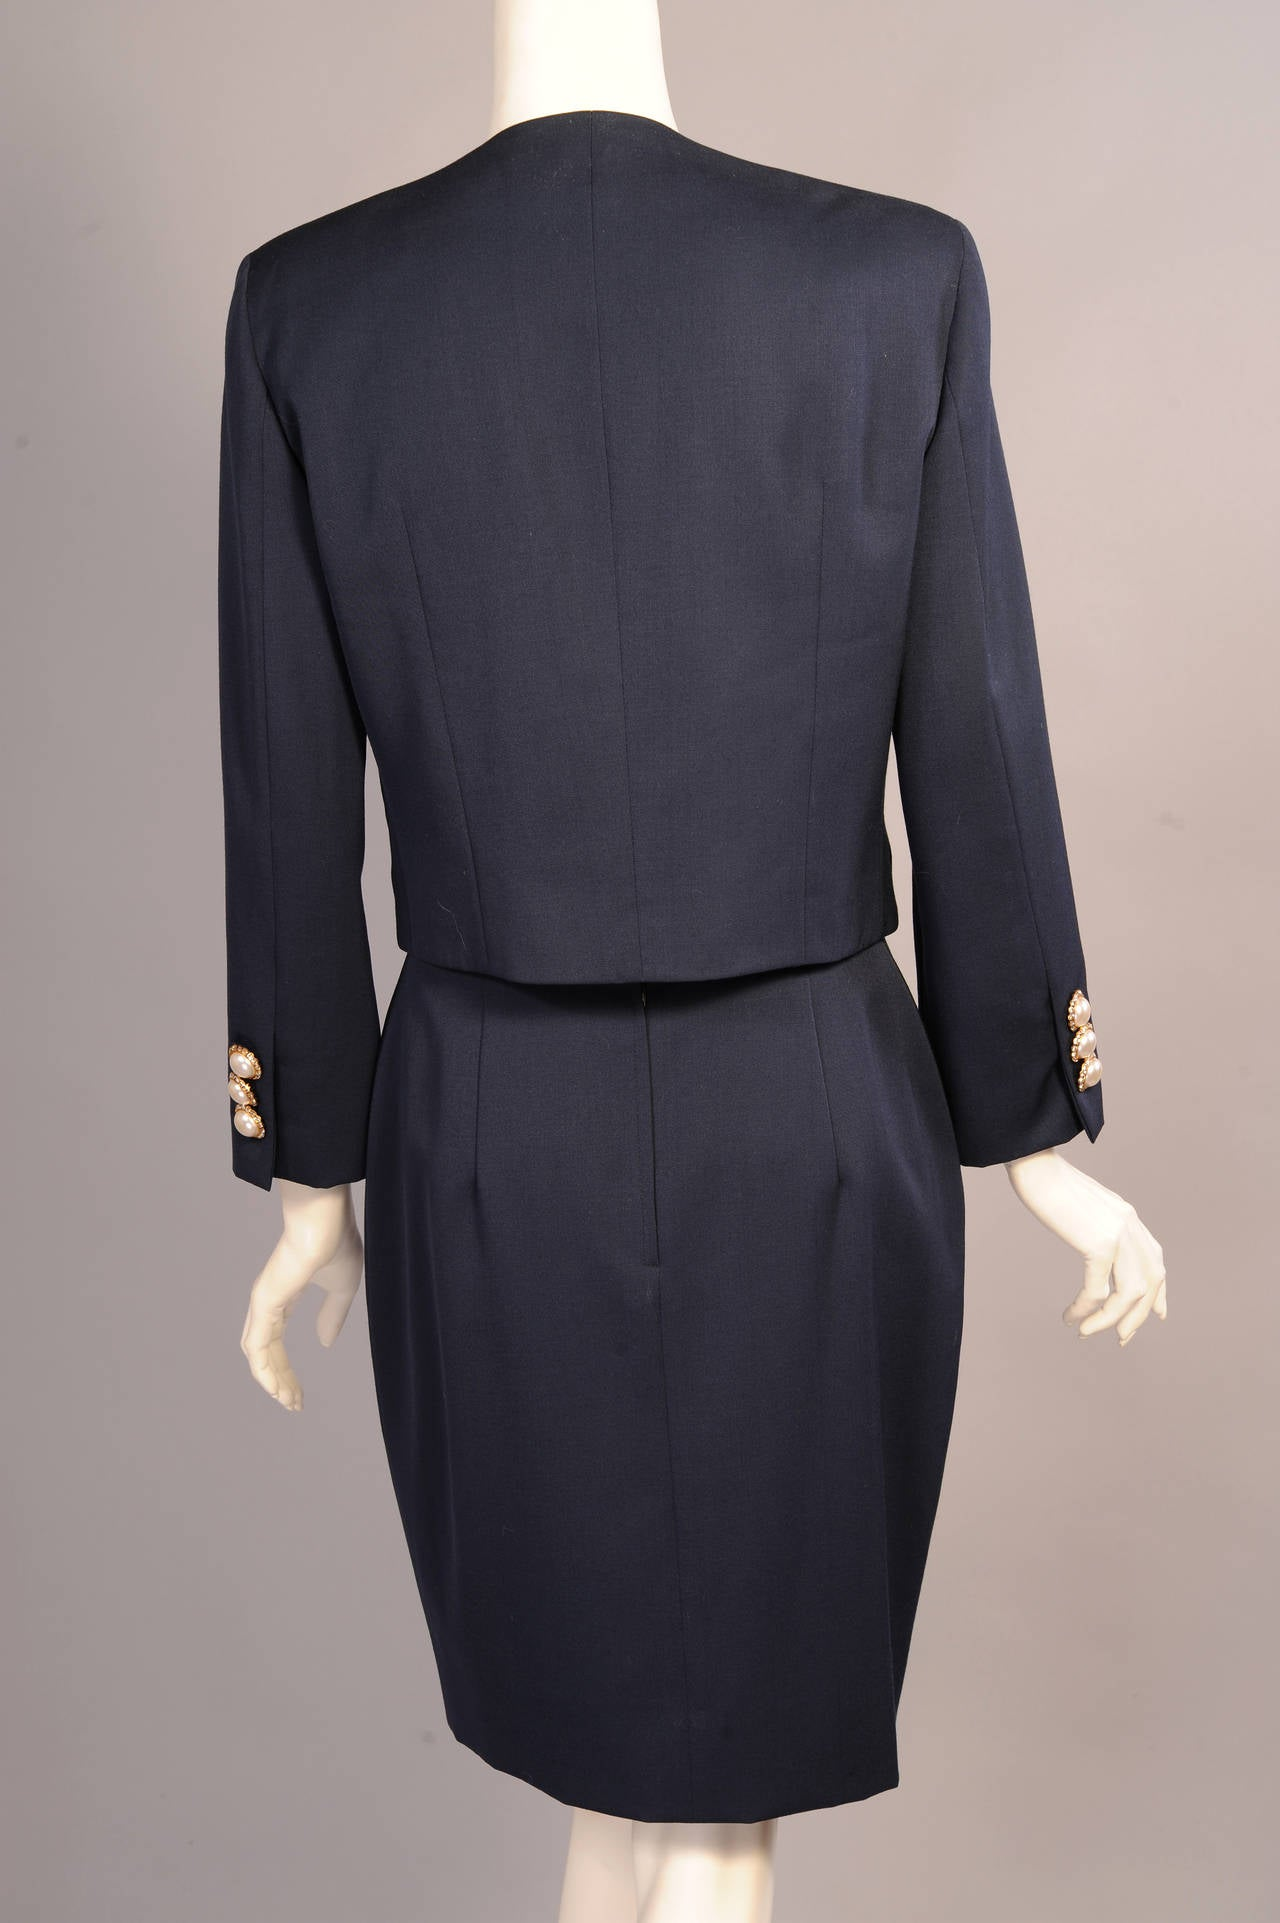 Iconic & Ironic Moschino Couture Suit, Chanel Inspired Suit Pockets For Sale 2